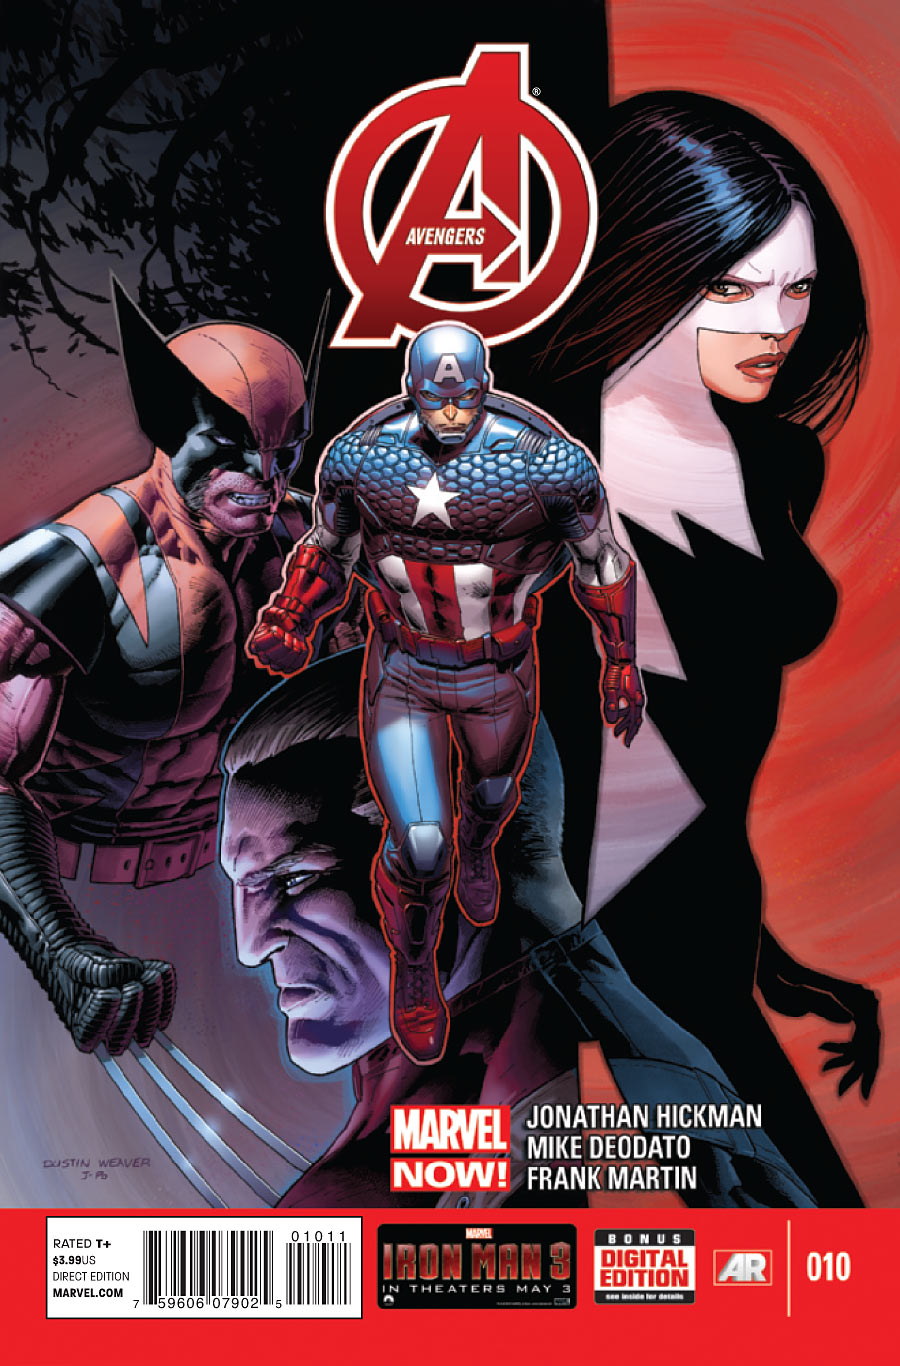 Avengers (2013) #10 Review